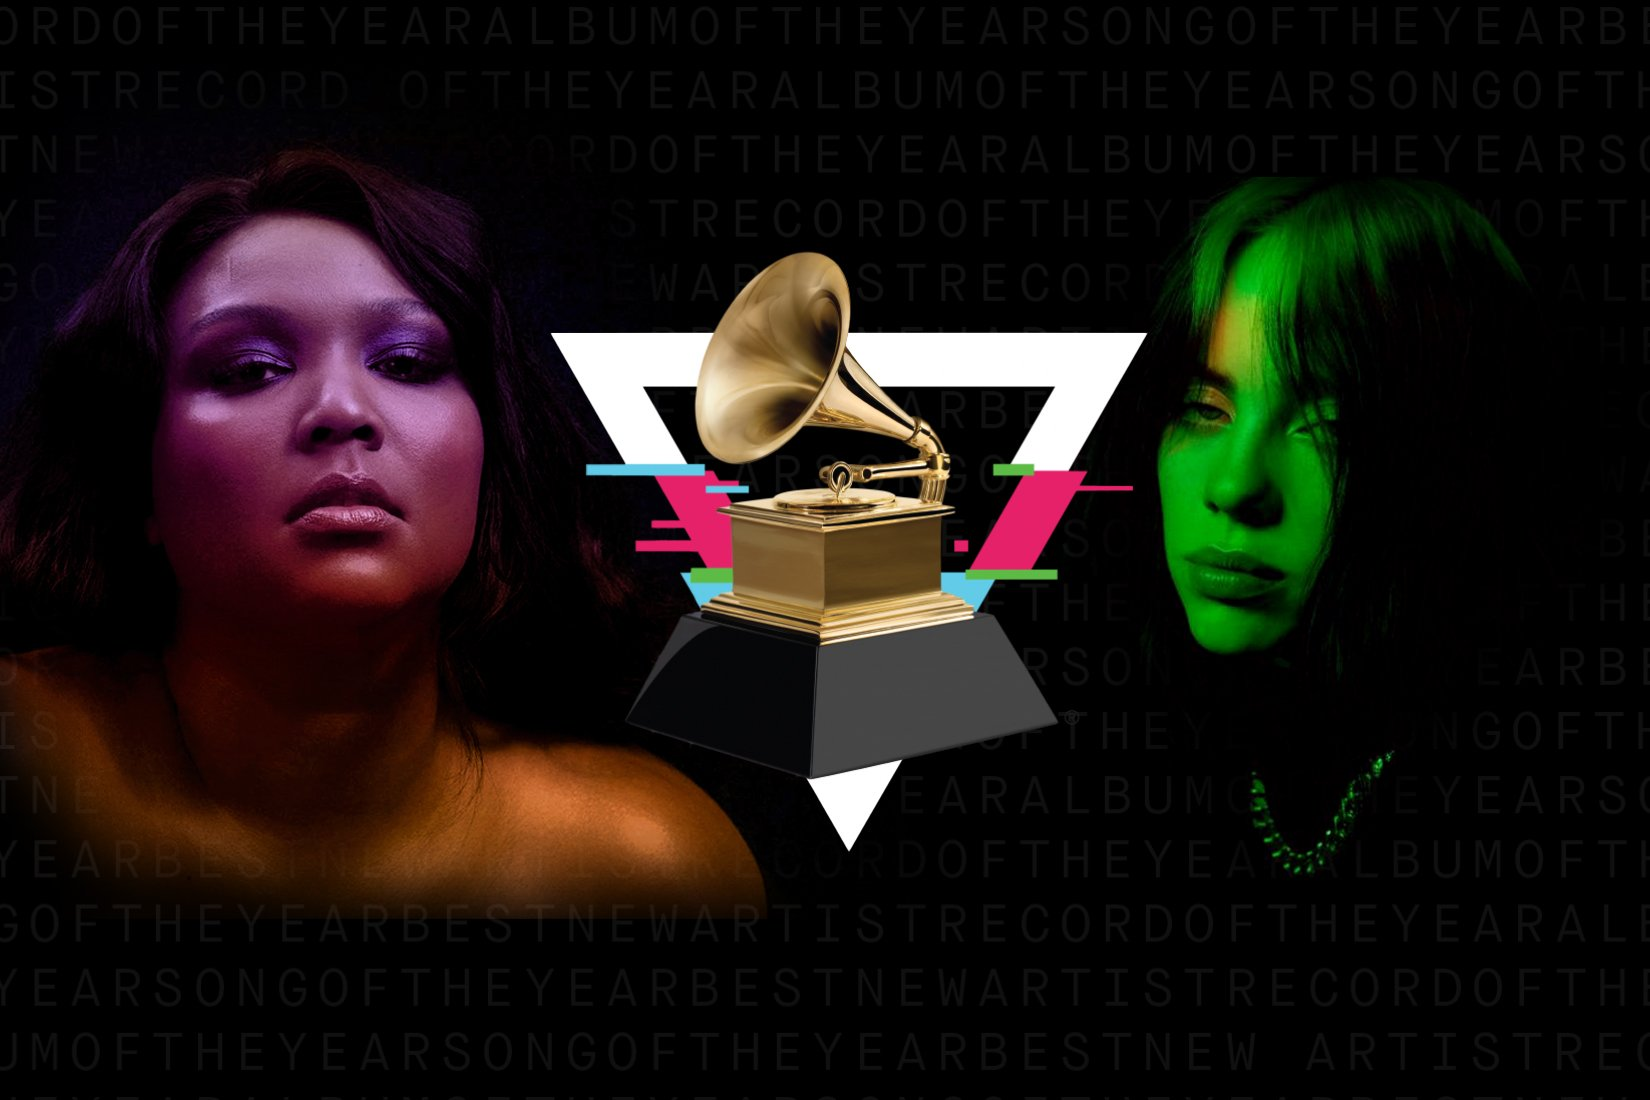 62nd Annual Grammy Awards CBS Recording Academy Billie Eilish Lizzo Beyonce Drake Kanye West Adele Taylor Swift Deborah Dugan